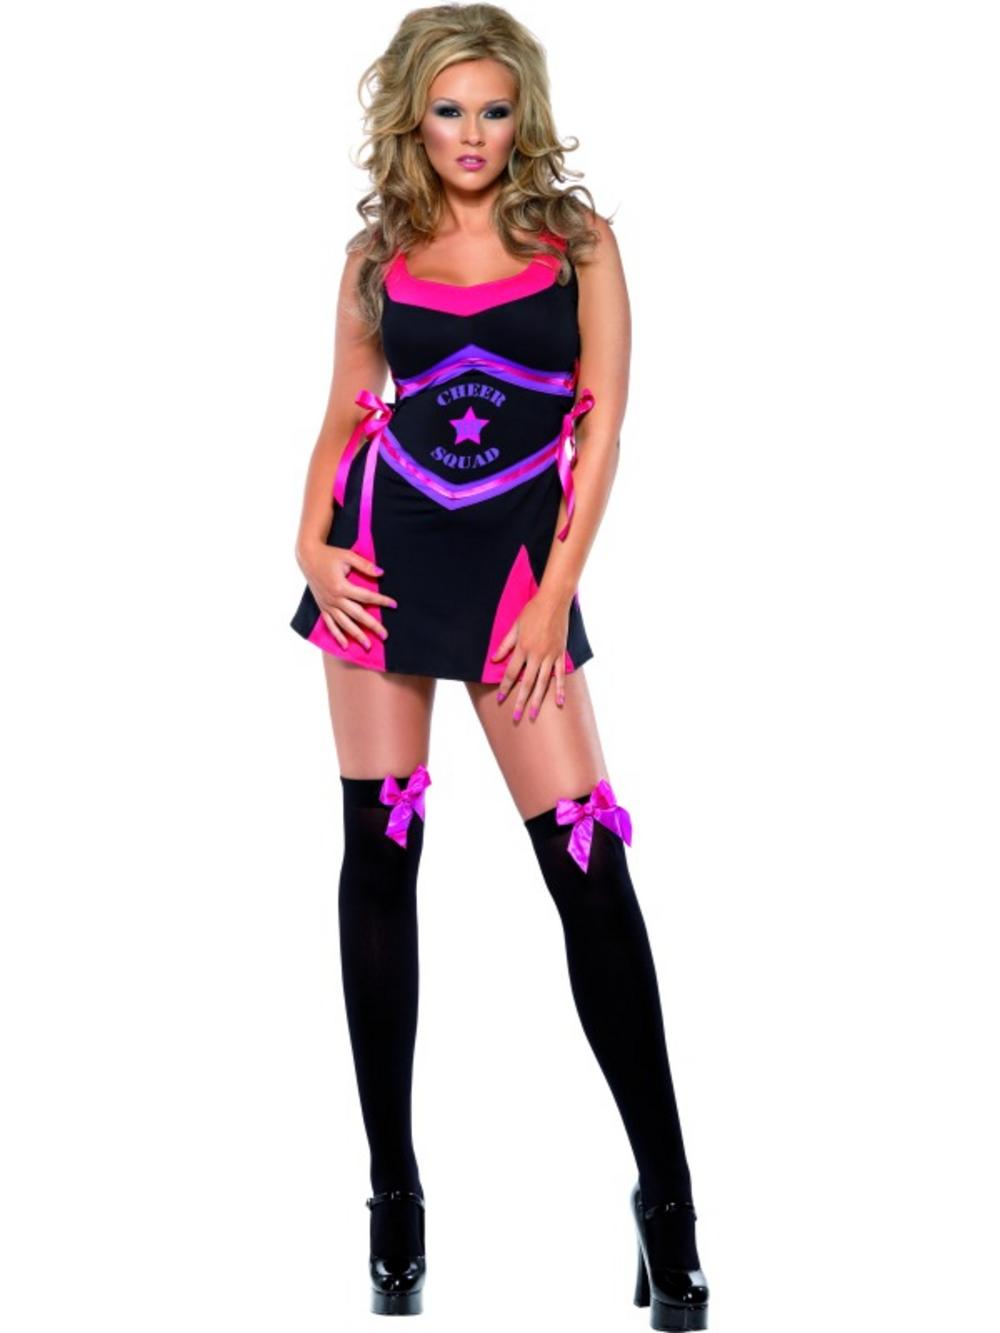 Sexy Fever Squad Cheerleader Costume